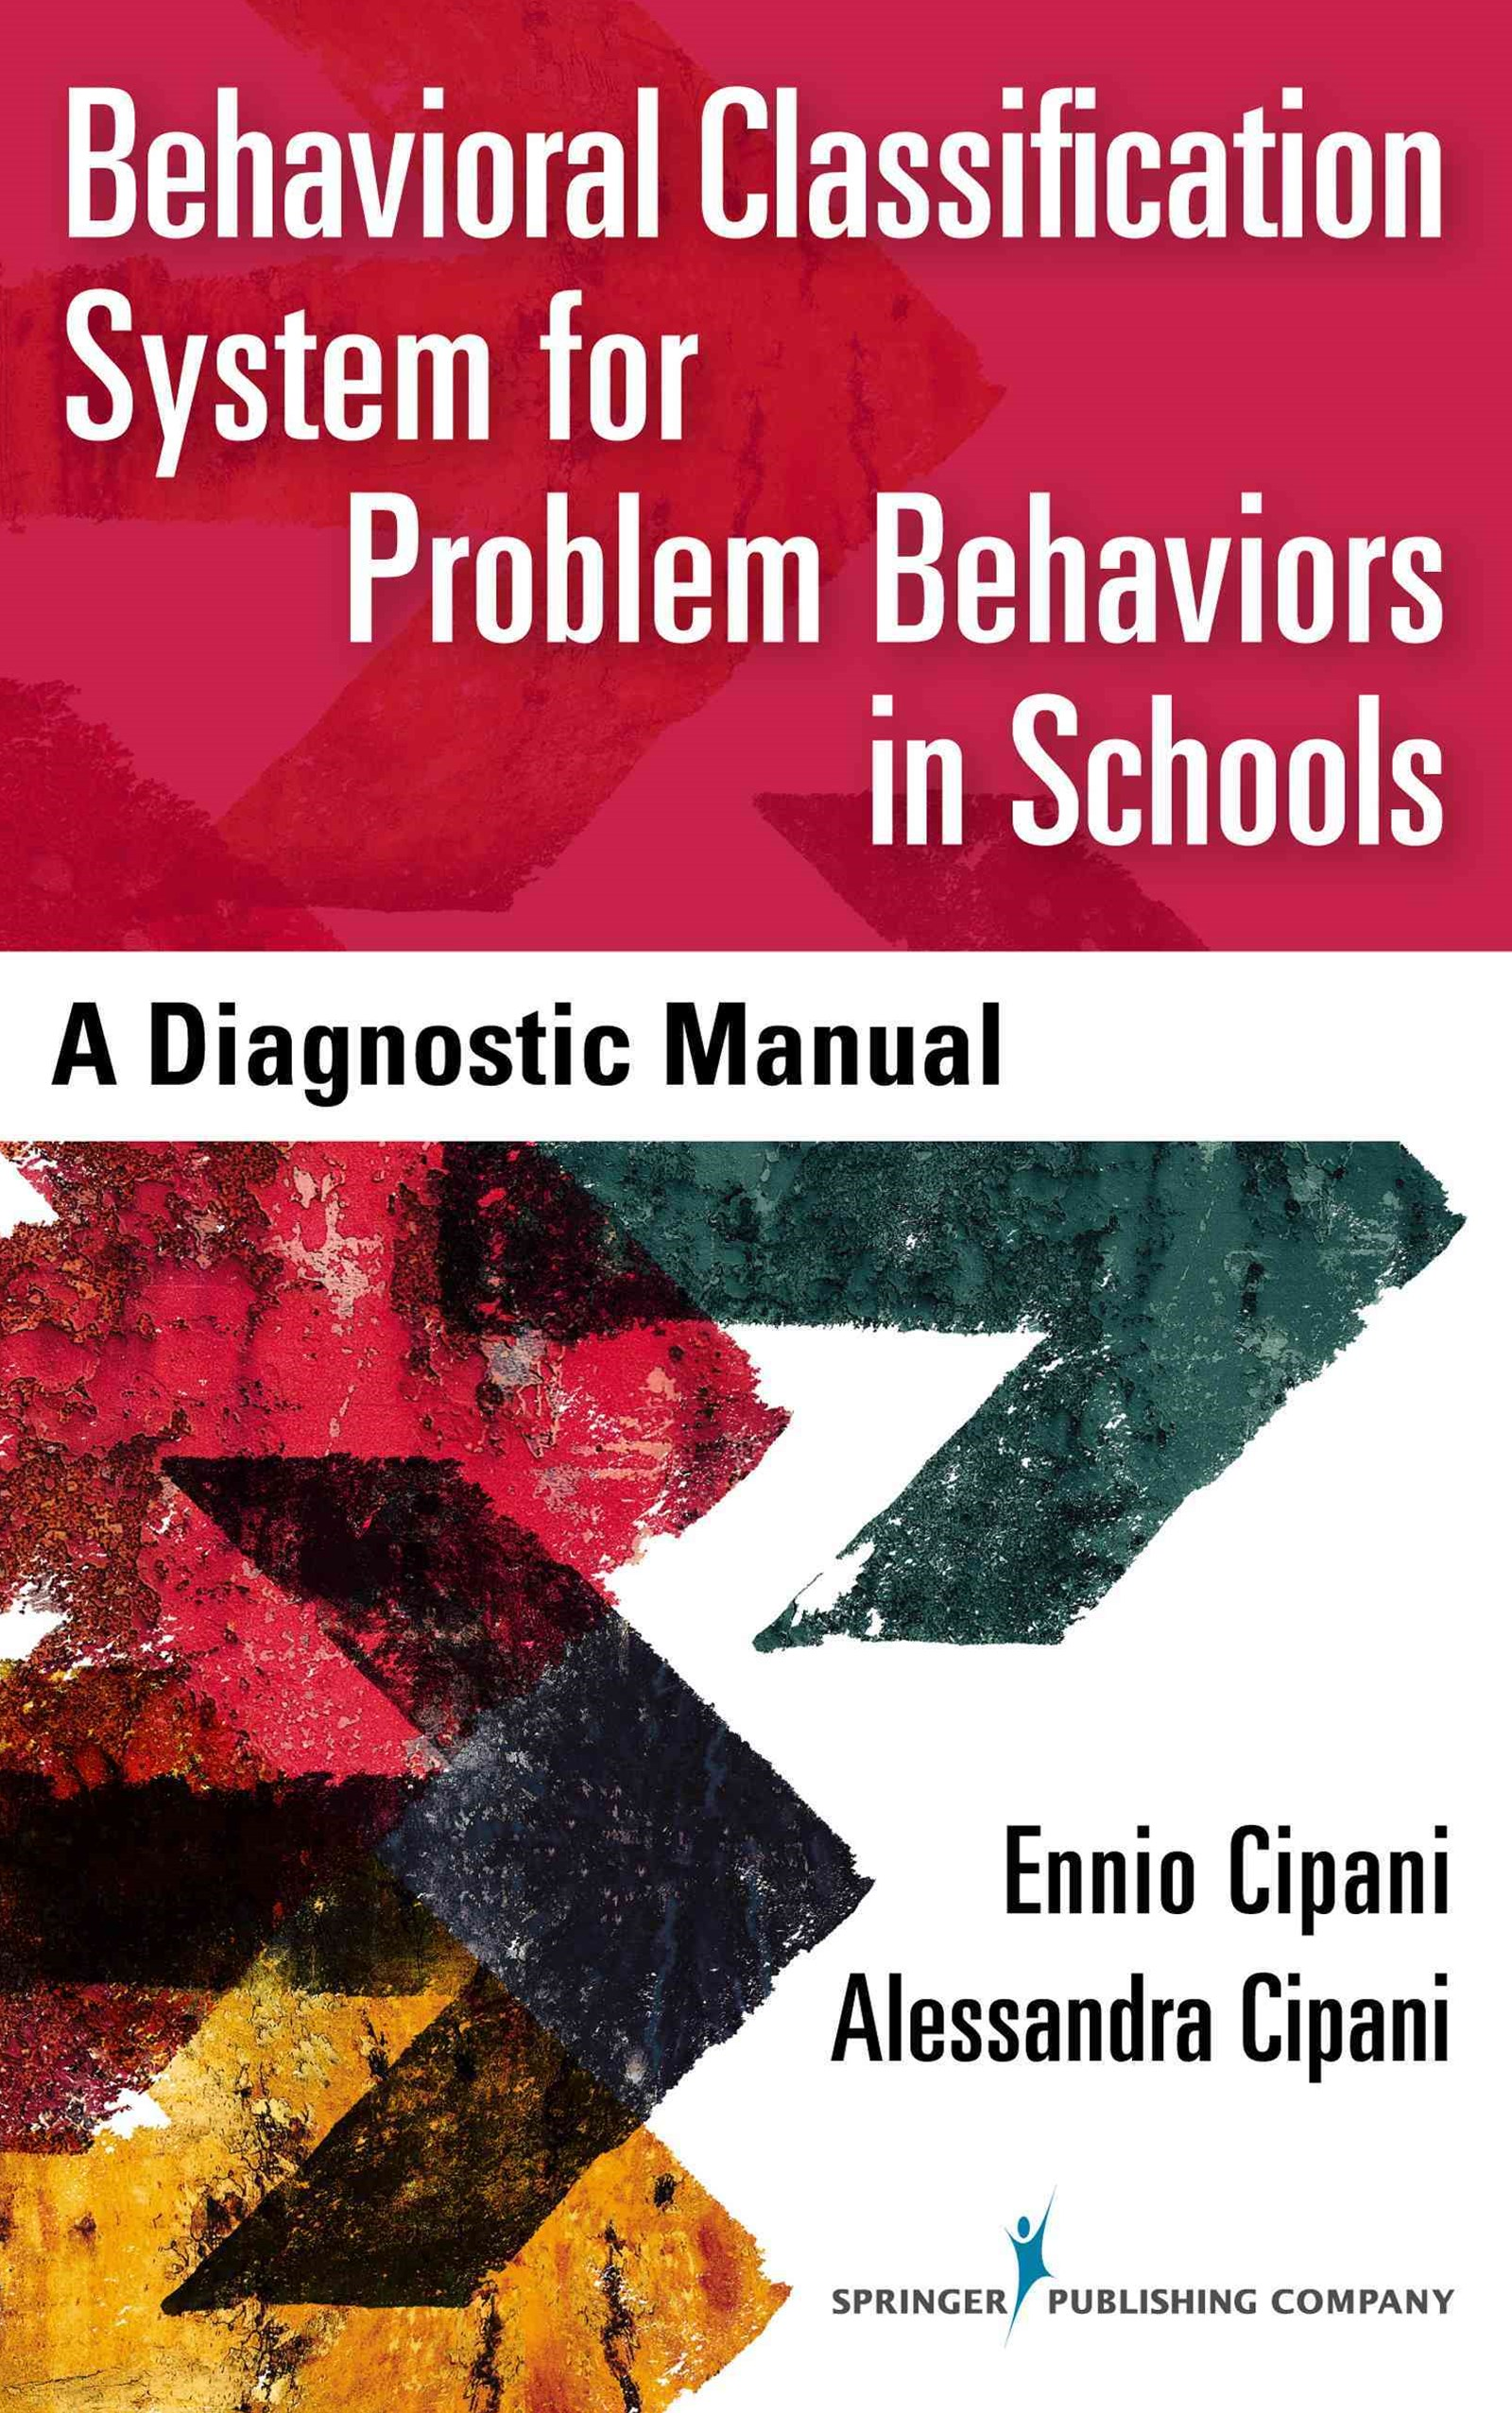 Behavioral Classification System for Problem Behaviors in Schools: A Diagnostic Manual